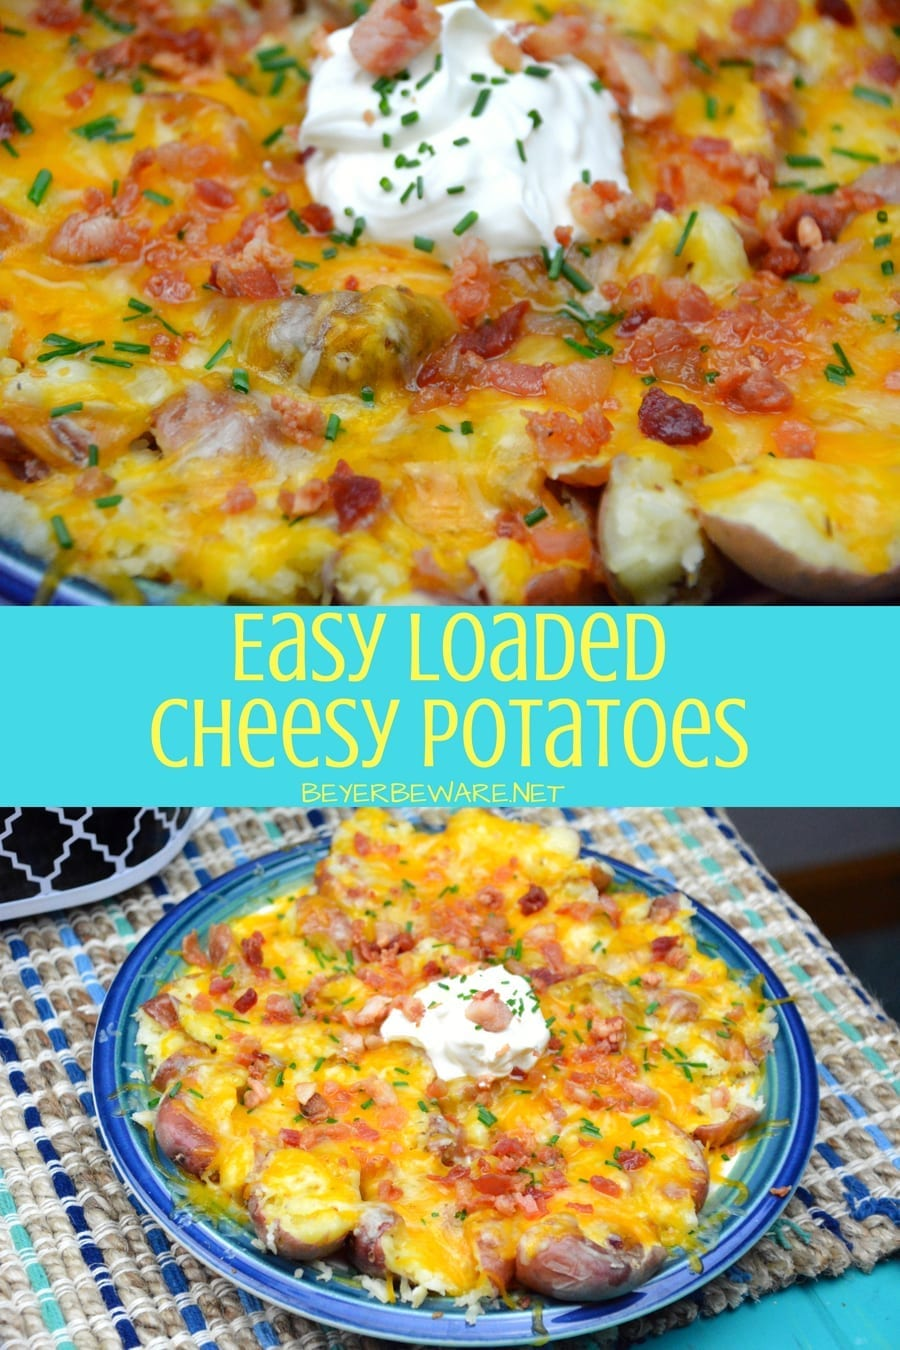 Quick cheesy potatoes are an easy loaded cheesy potatoes recipe with all of your loaded baked potato toppings that can be done in under 20 minutes.